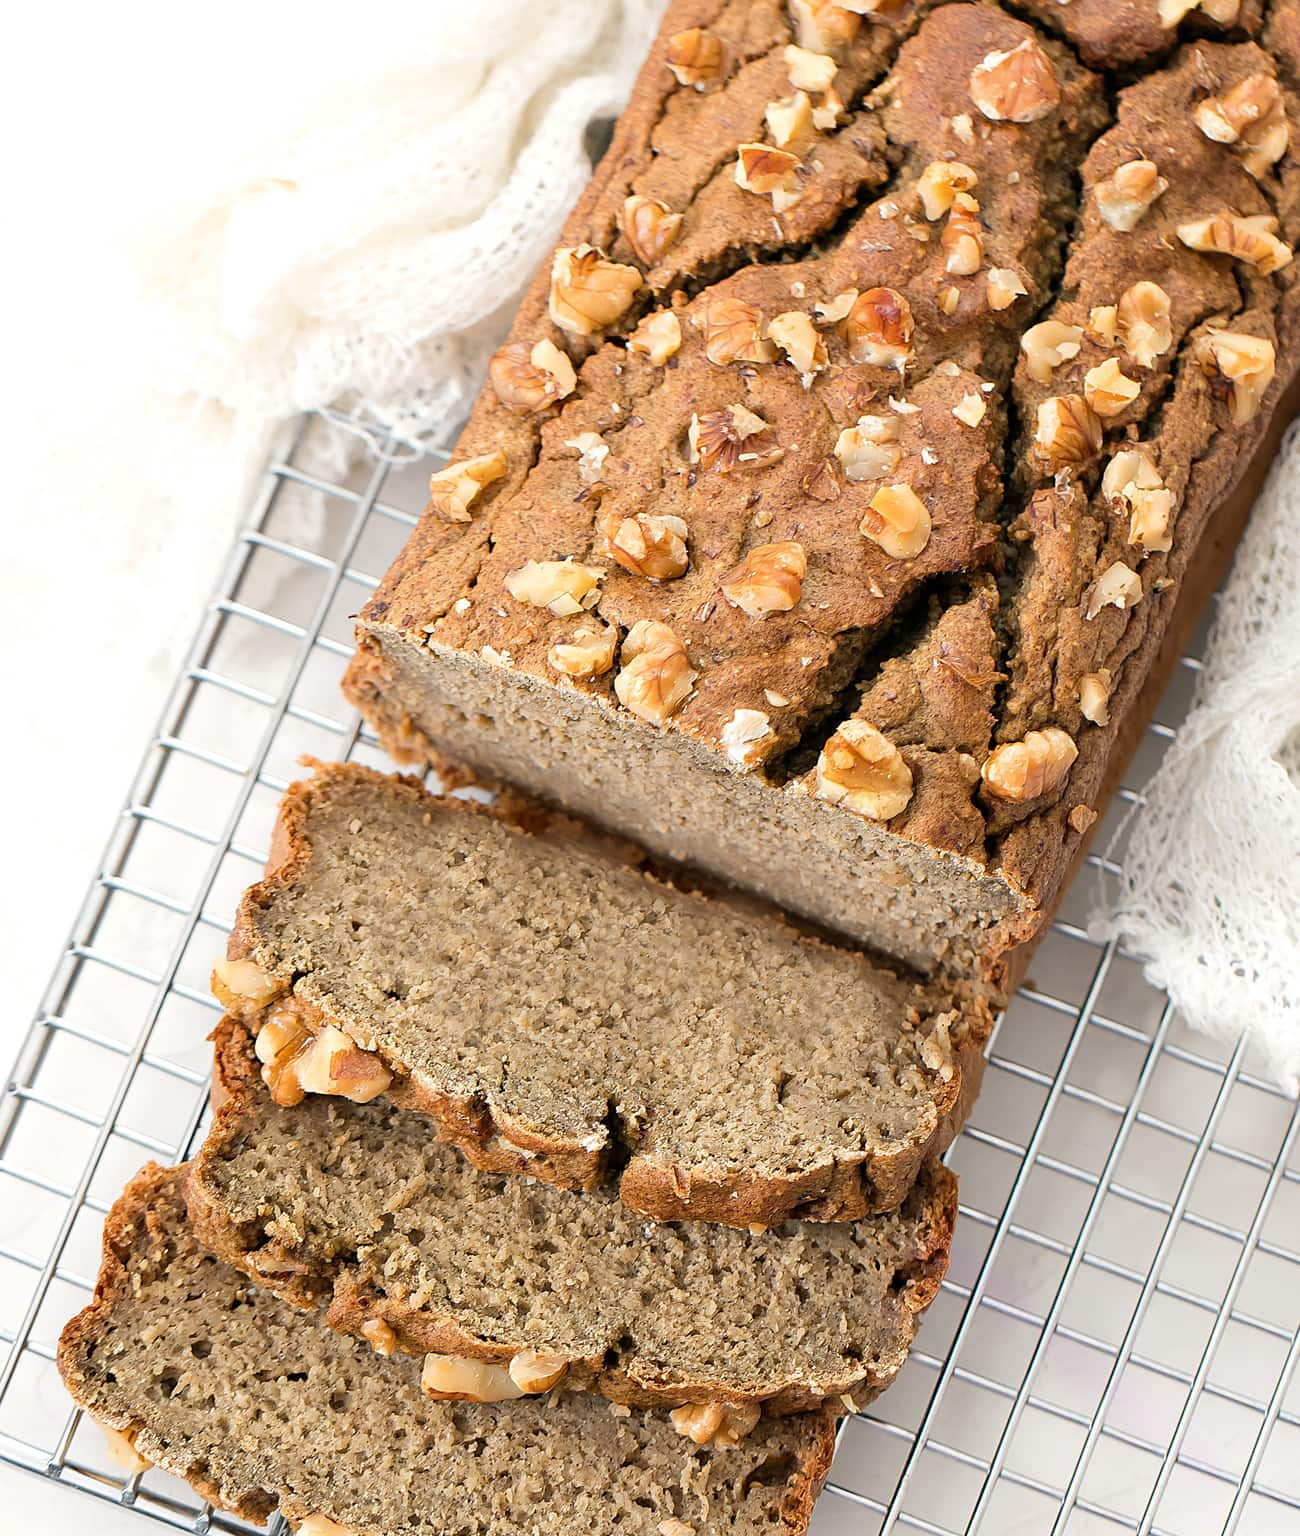 4 Ingredient Healthy Banana Oatmeal Bread No Flour Refined Sugar Or Butter Kirbie S Cravings